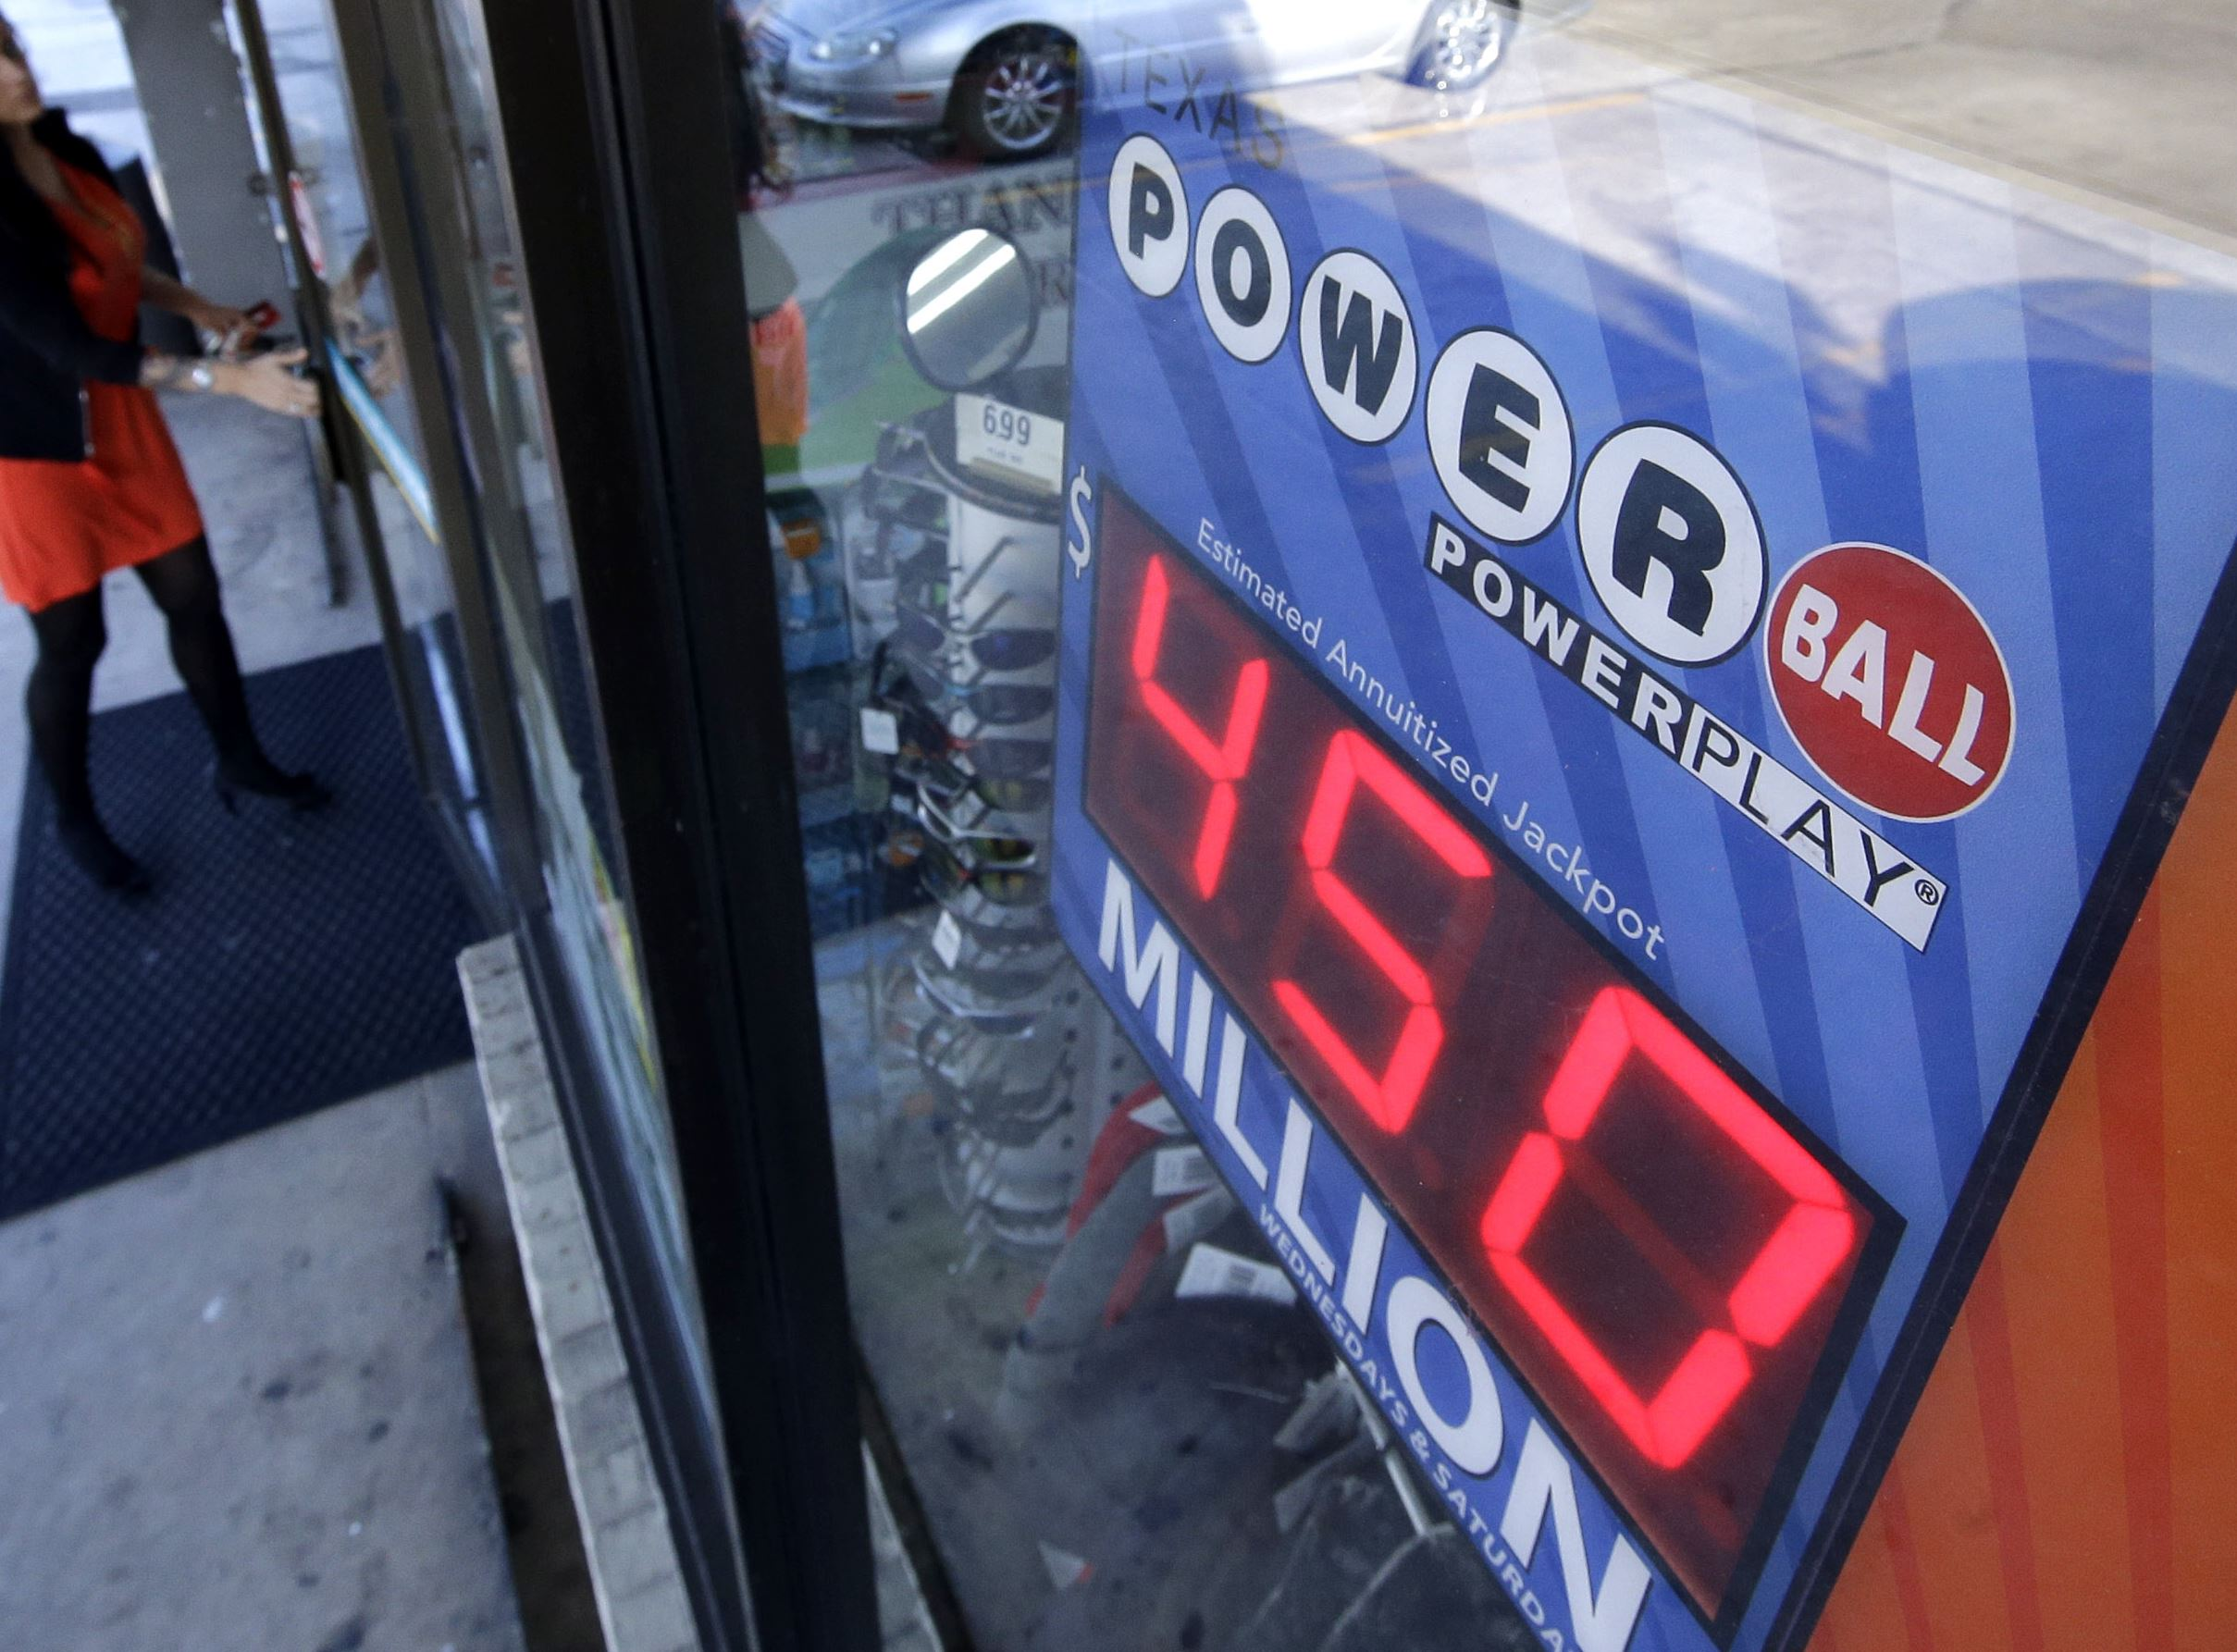 Powerball jackpot reaches $500 million